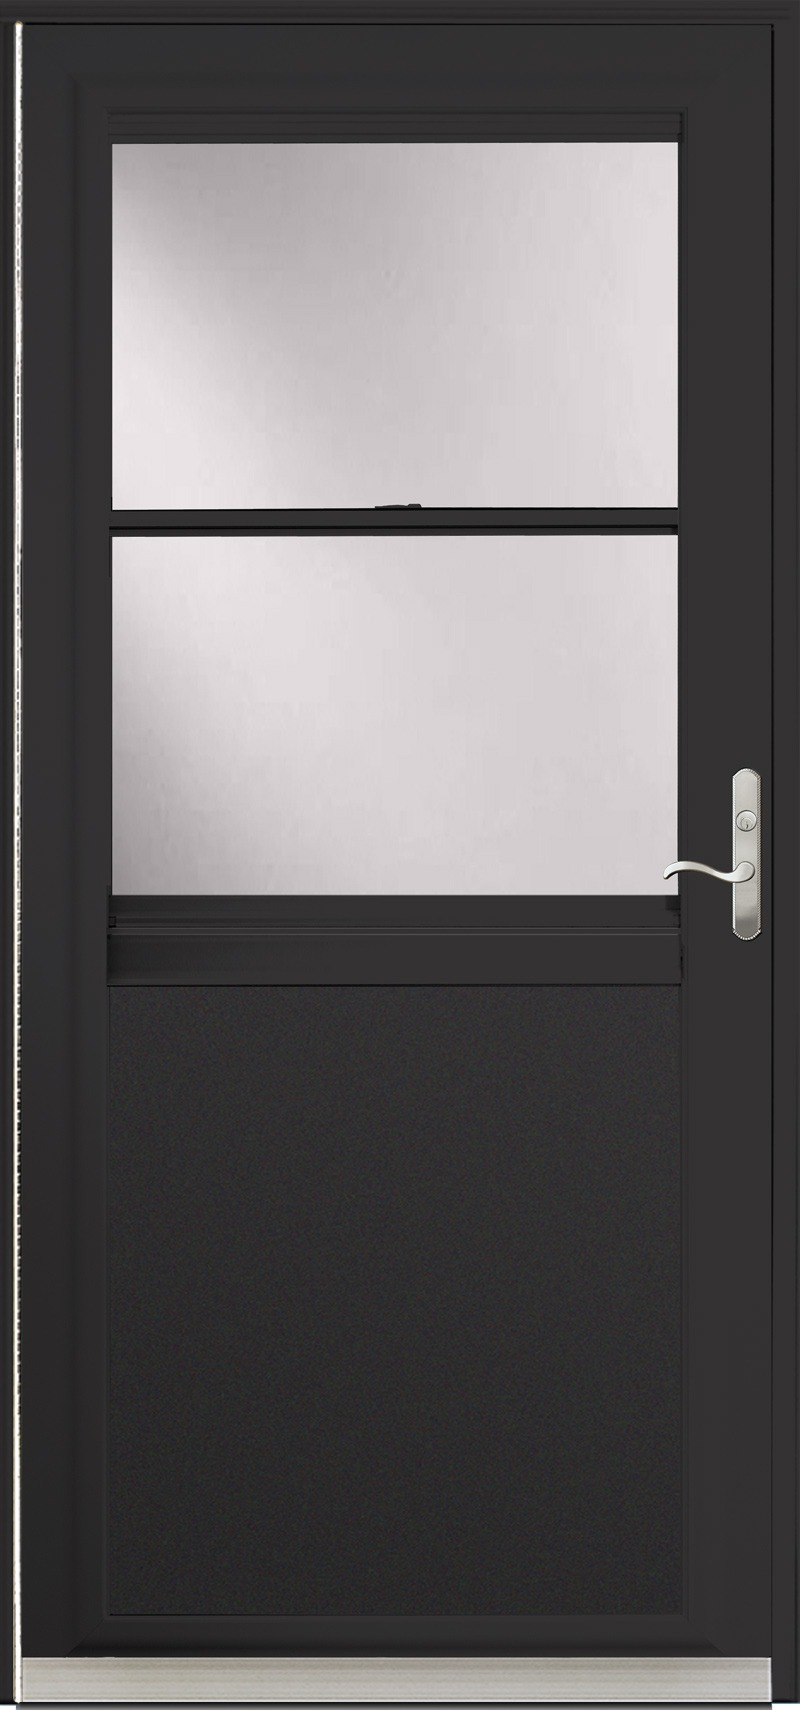 A door with a black frame and glass